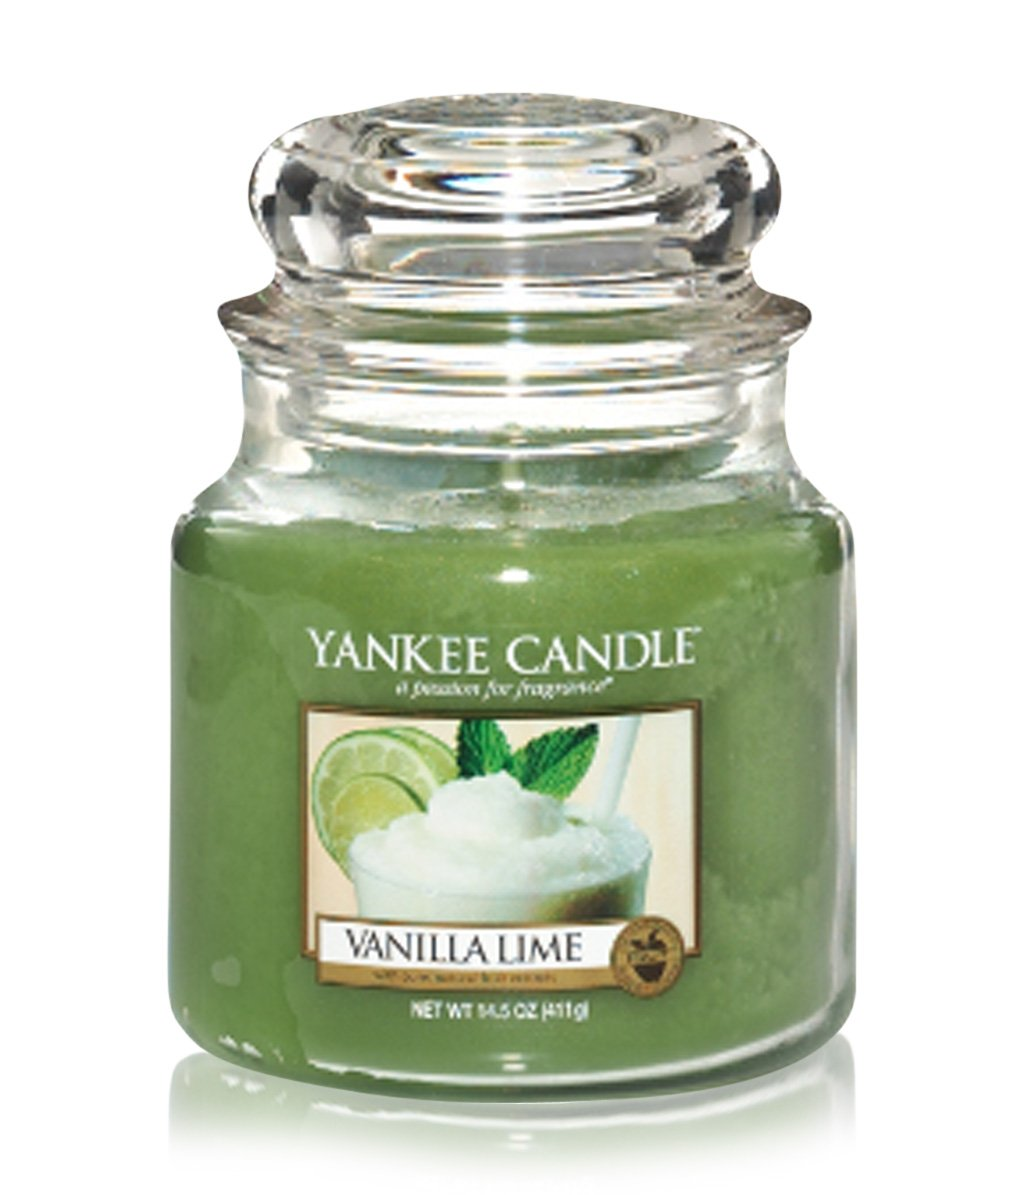 yankee candle housewarmer vanilla lime jar duftkerze online bestellen flaconi. Black Bedroom Furniture Sets. Home Design Ideas